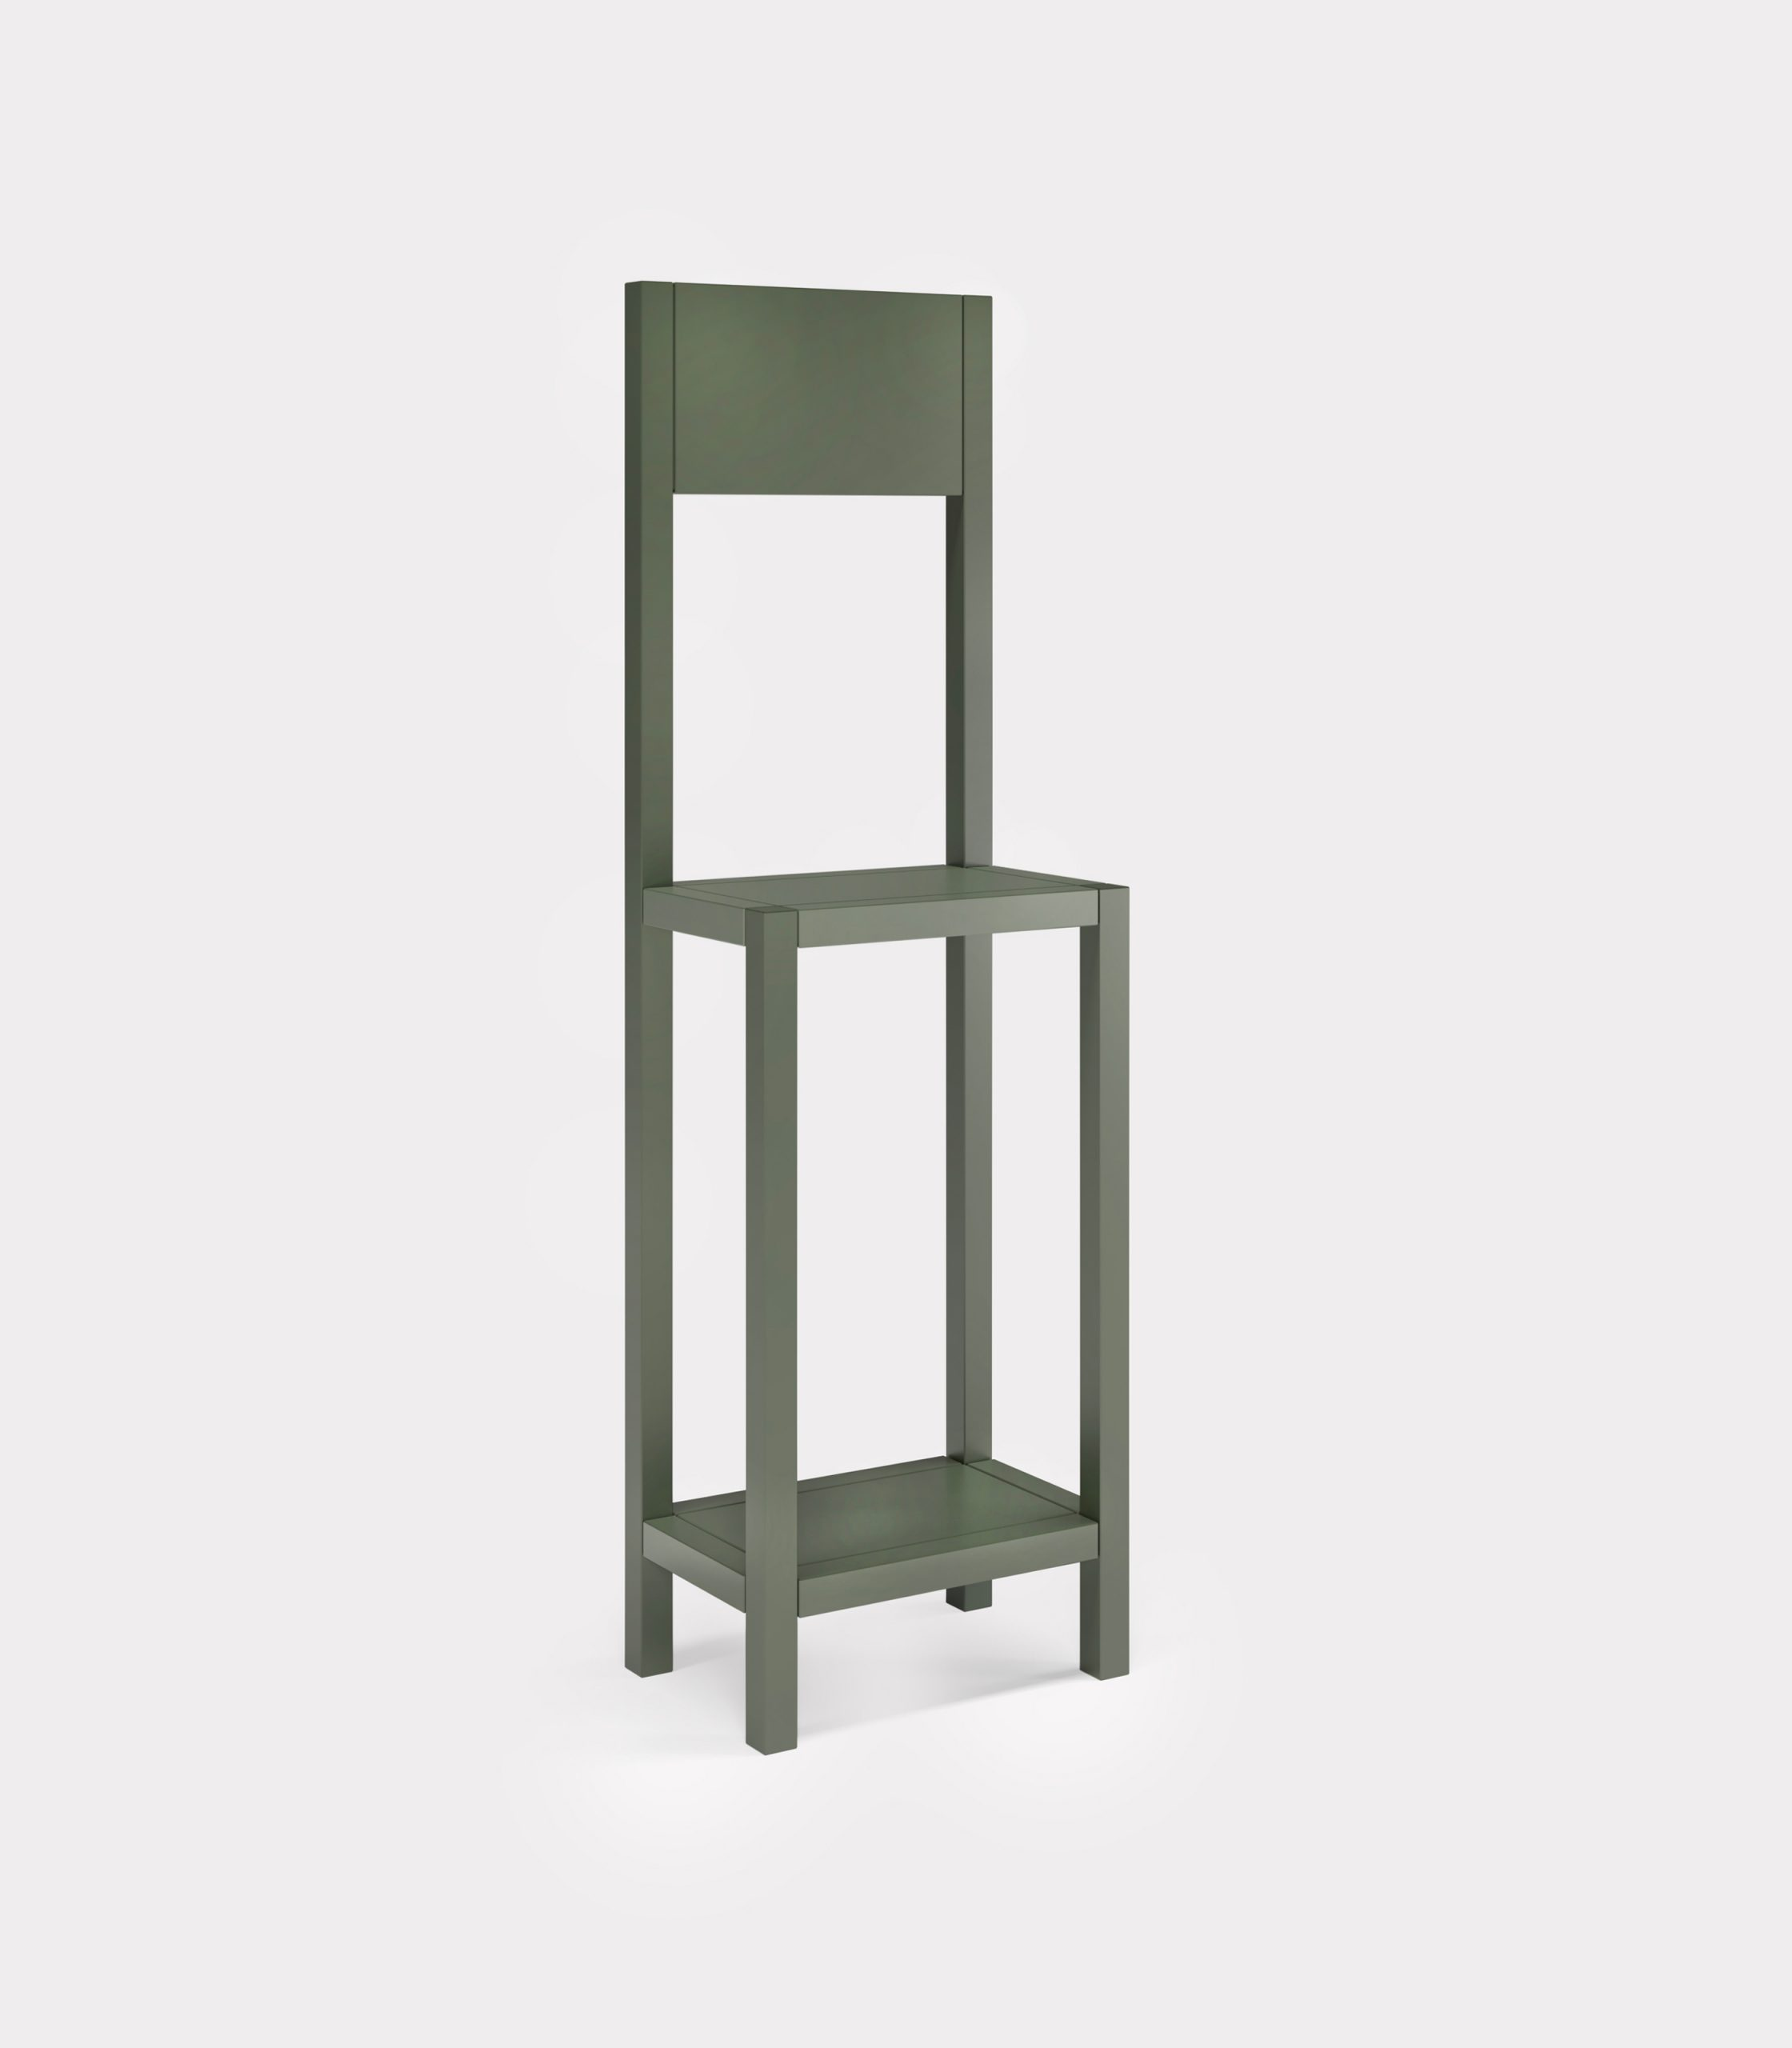 Olive green chair for an unexpected guest loopo milano design FD